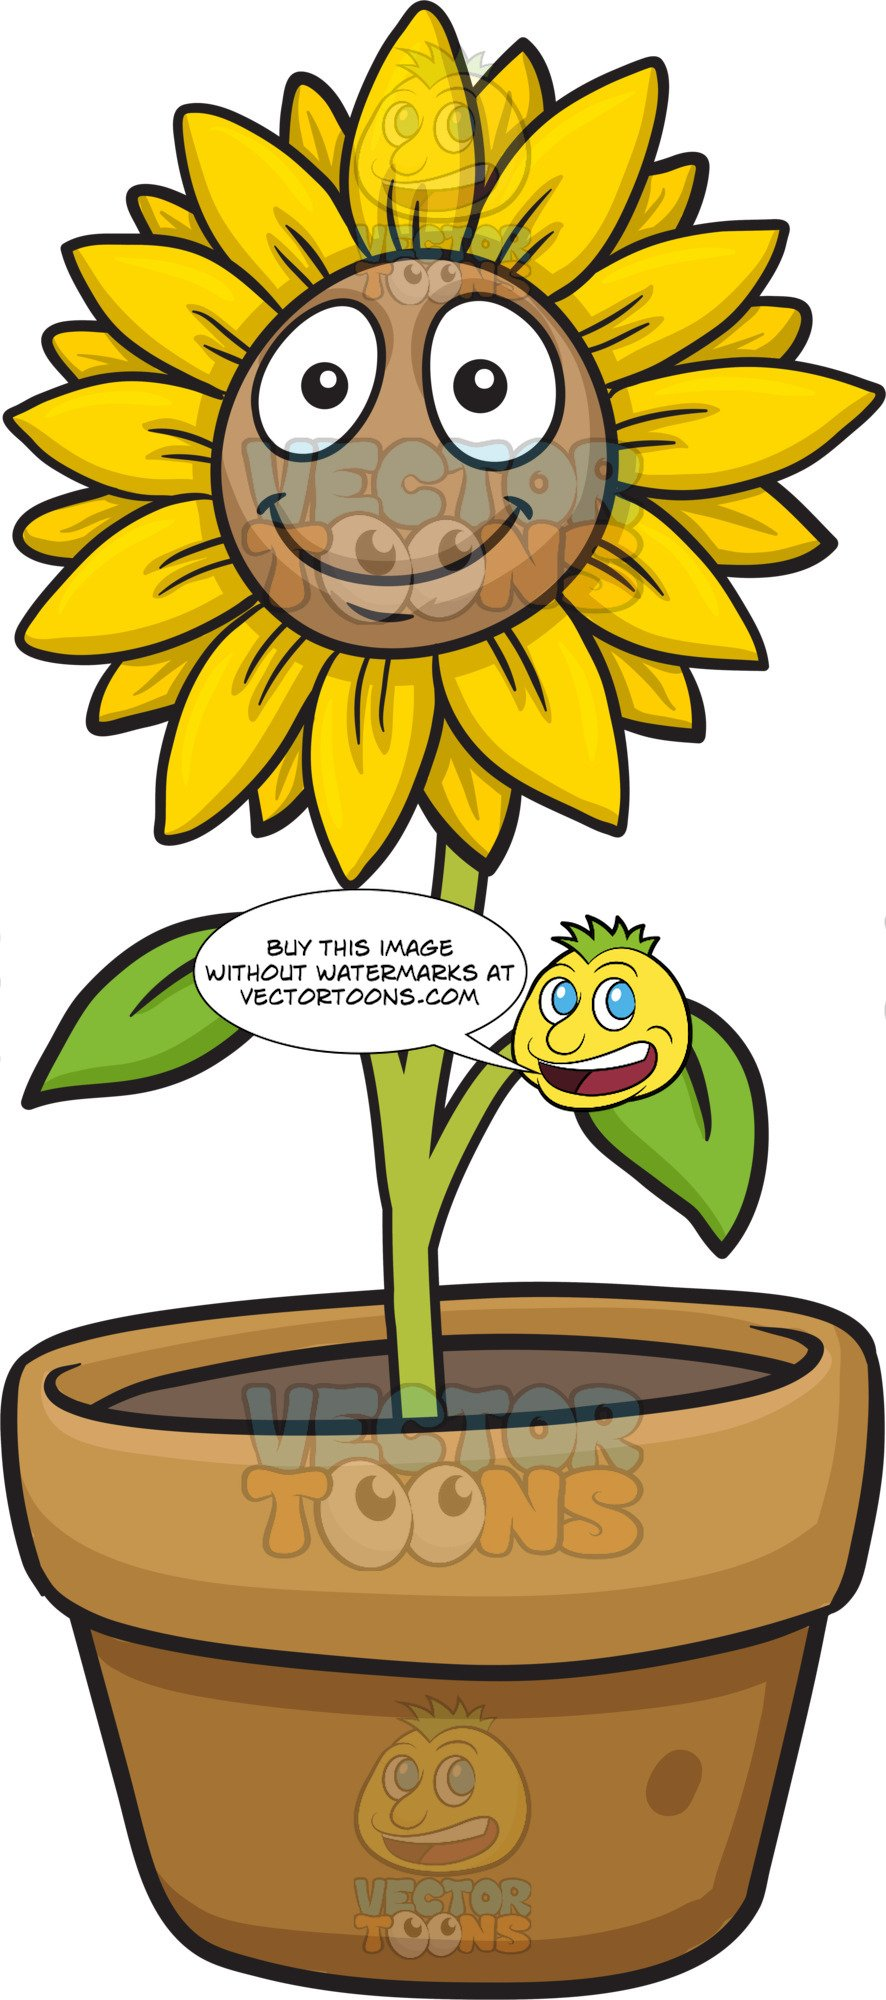 A smiling sunflower.